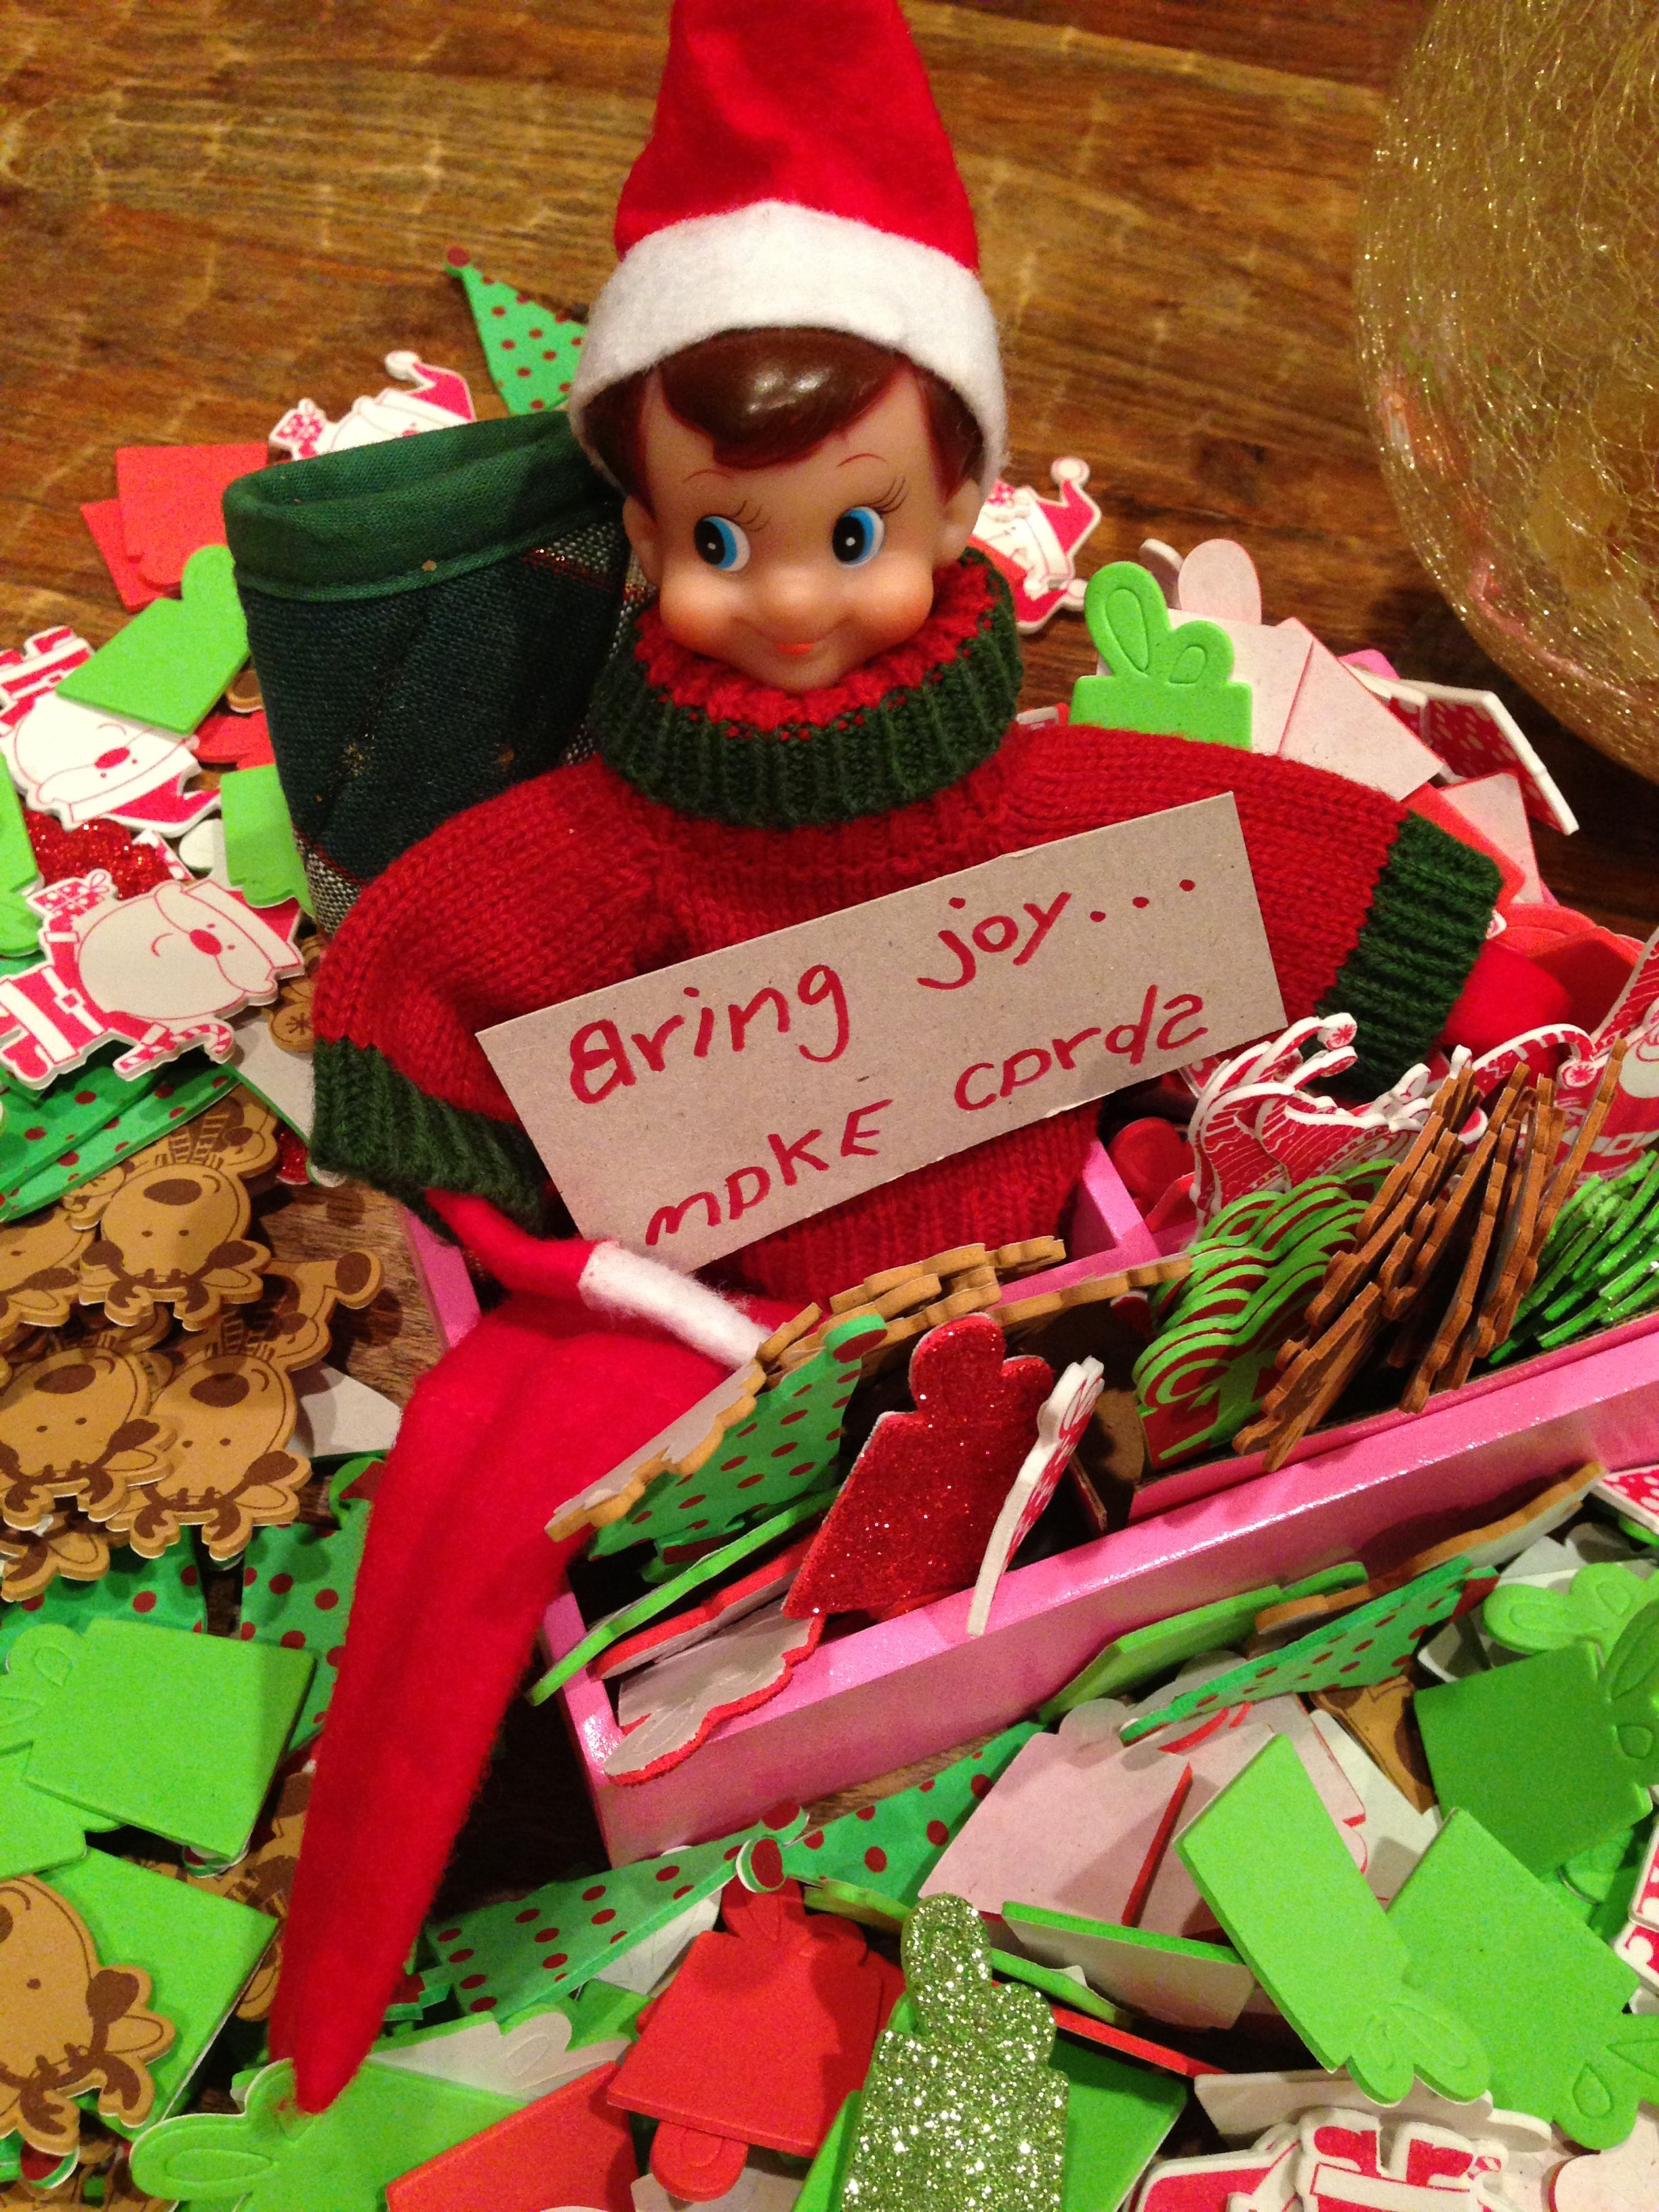 Have your kids make some holiday cards and deliver to an assisted living home, neighbors or strangers! Not all elves need to be naughty! Spread Christmas joy!